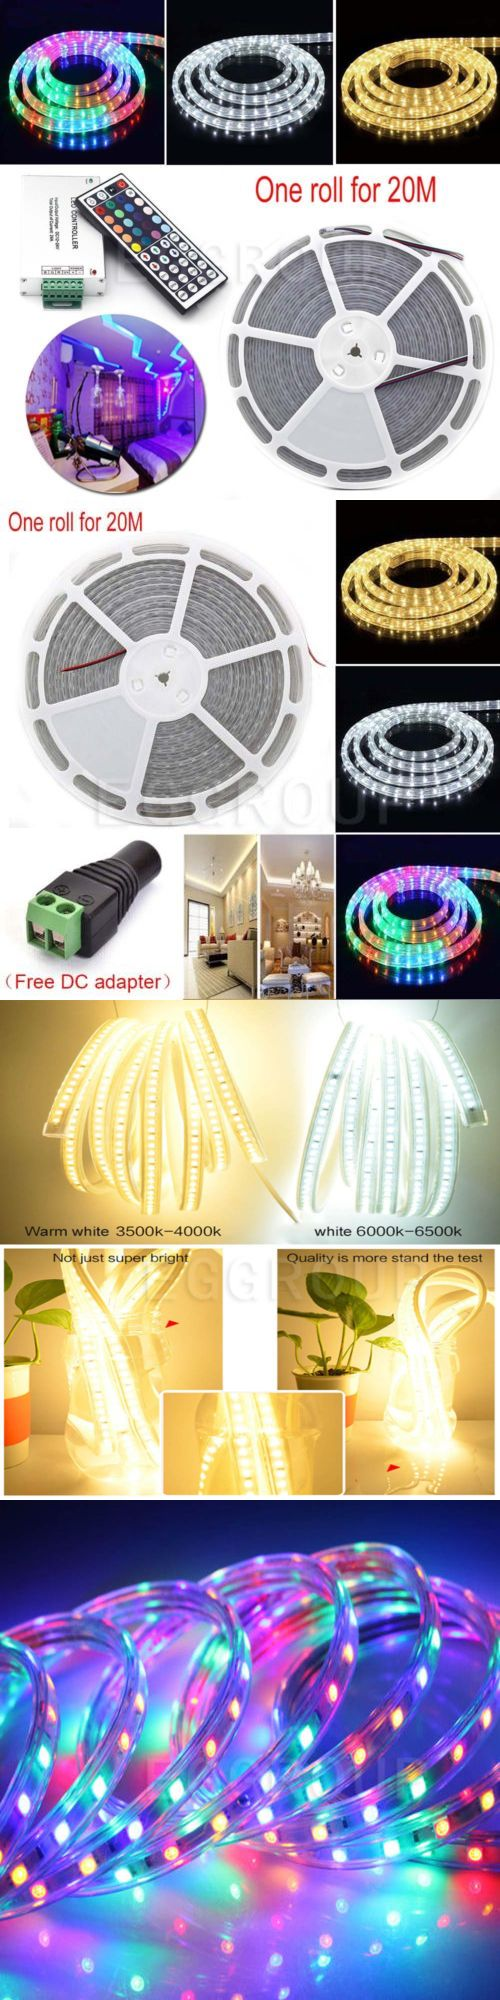 Lamps And Lighting: 20M 1200 Leds Smd-5050 Waterproof Led Strip Fairy Light Dc 24V +Remote Control -> BUY IT NOW ONLY: $62.69 on eBay!